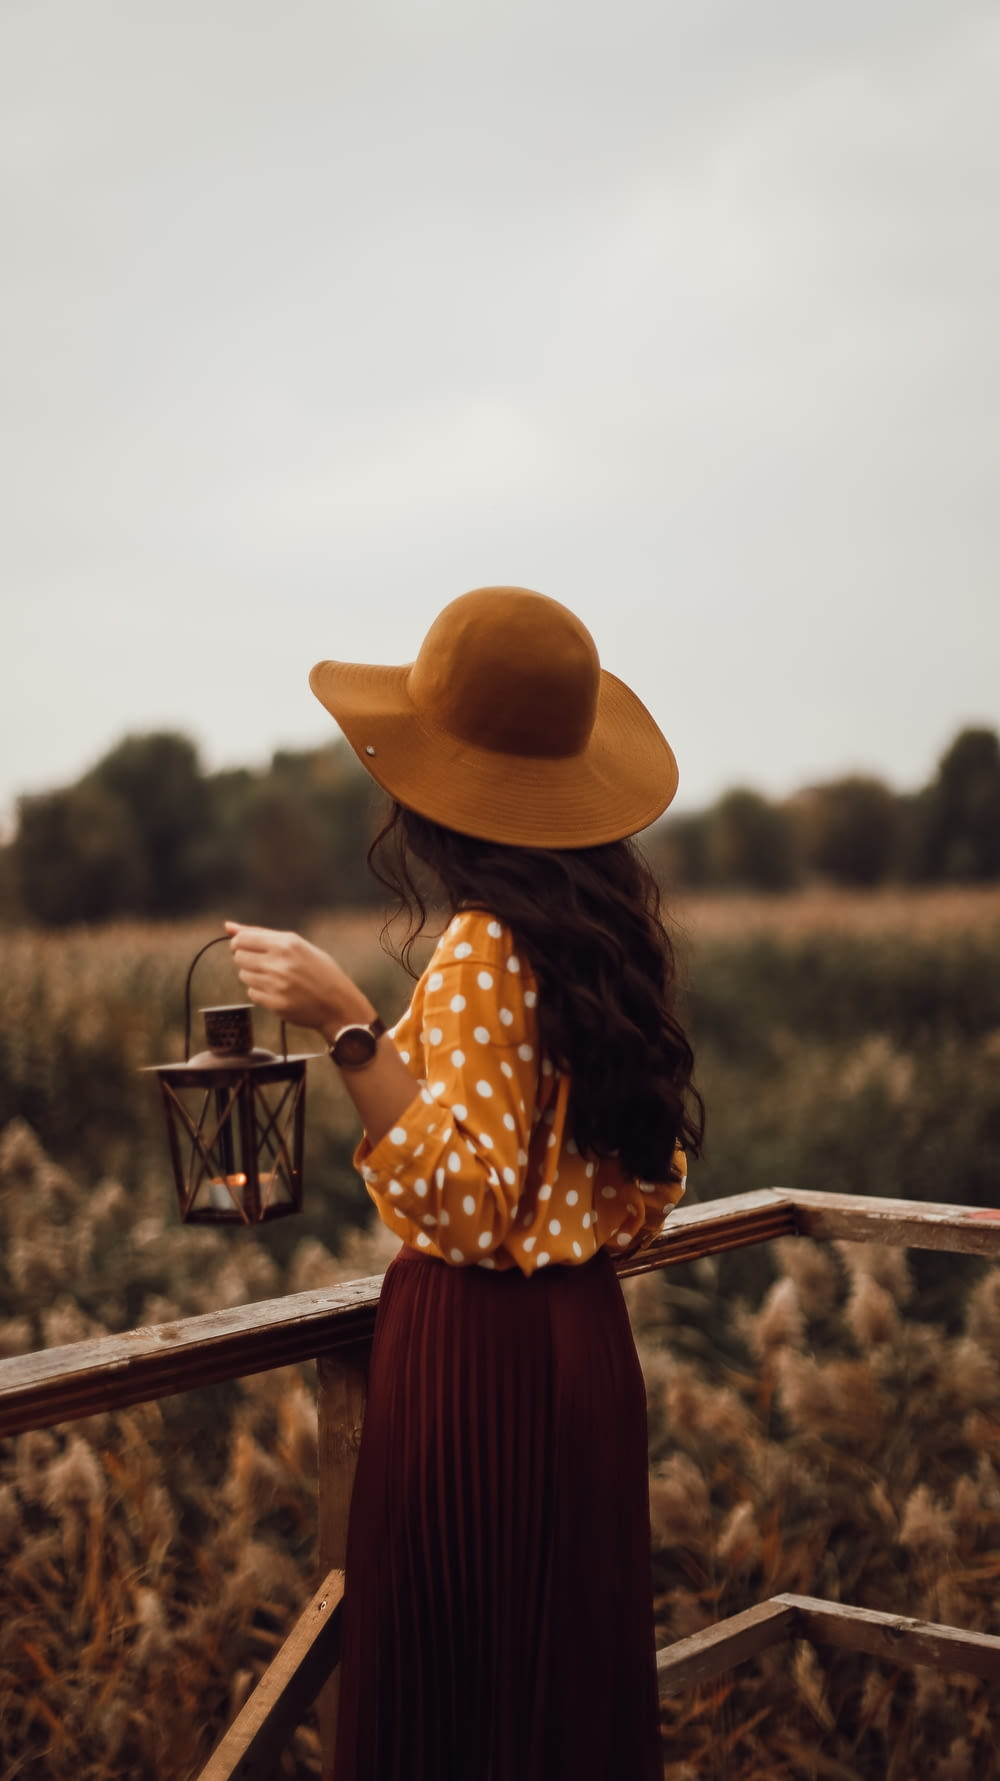 woman in brown sun hat and black and white polka dot dress holding brown wooden fence